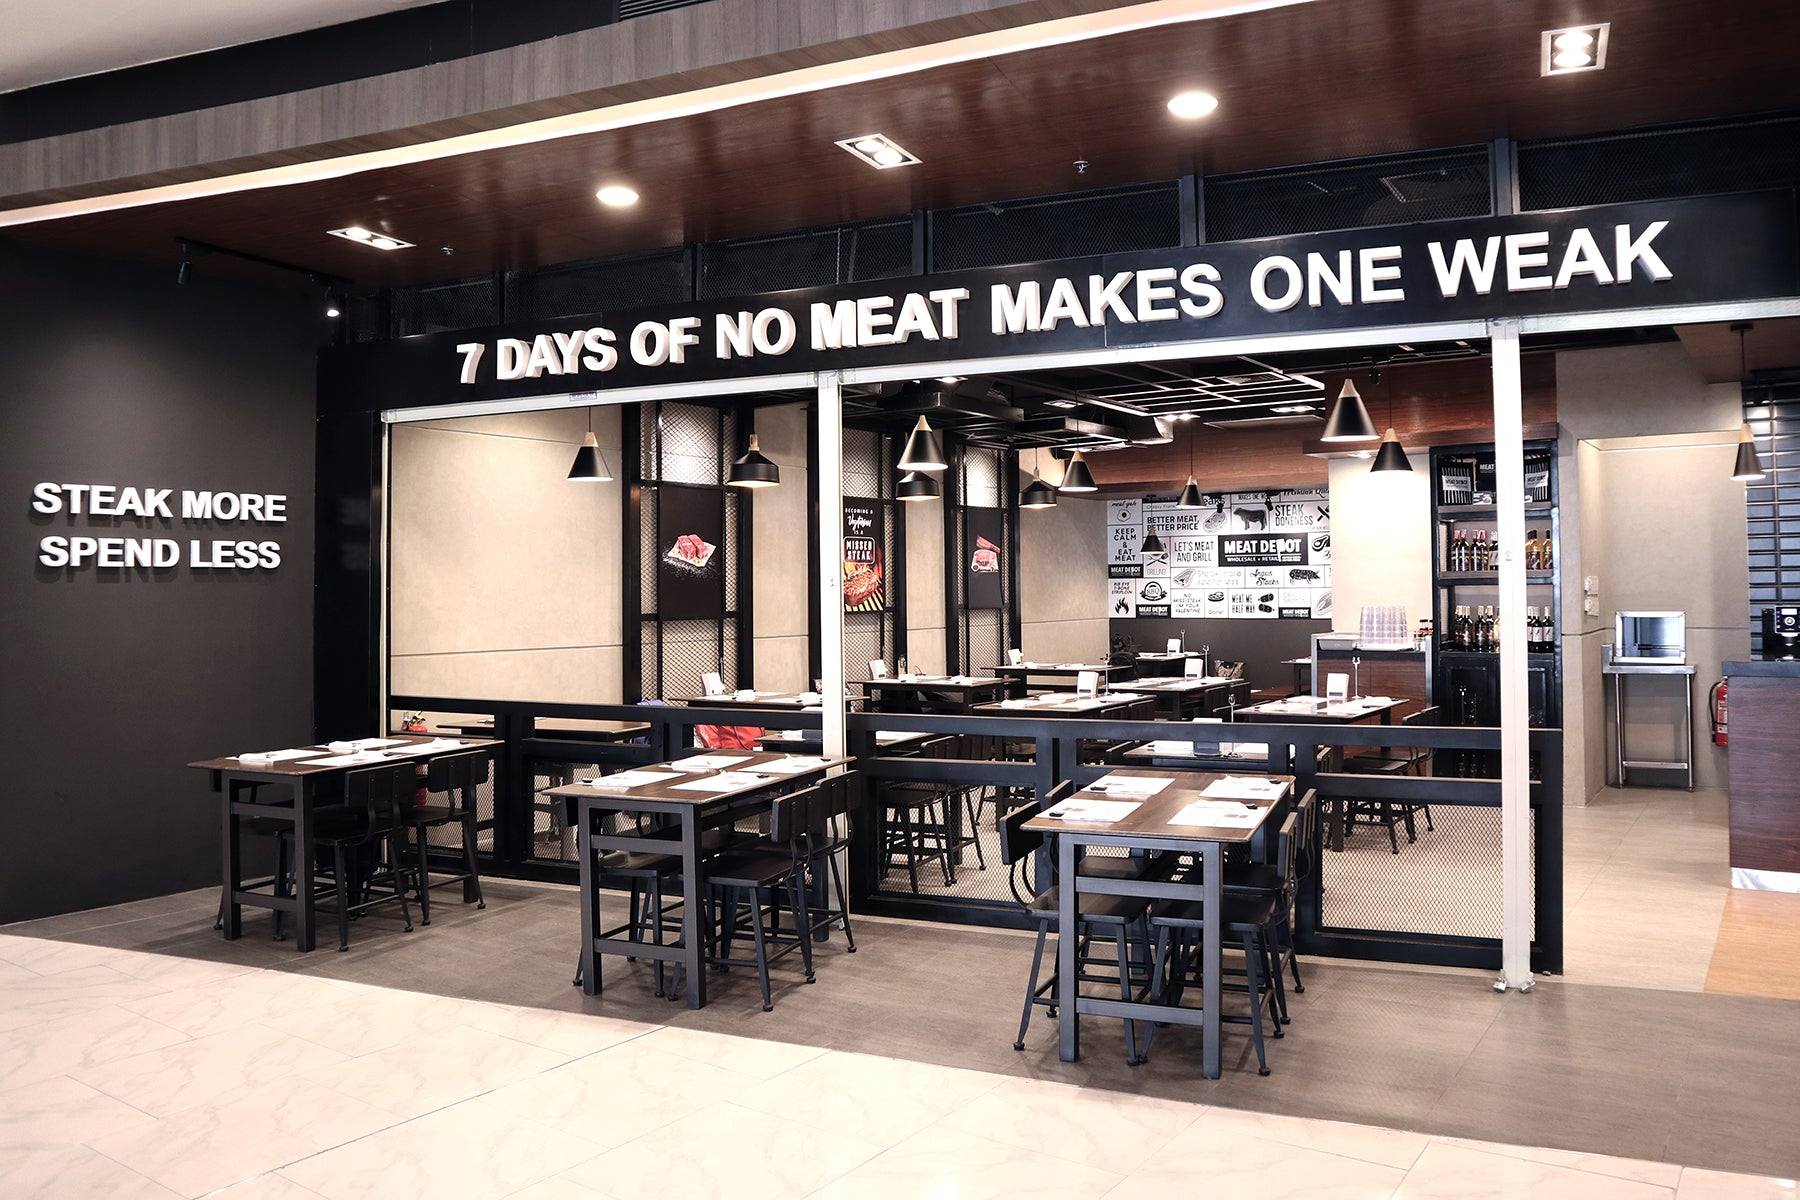 Robinsons Galleria - Meat Depot | Buy Steaks Online